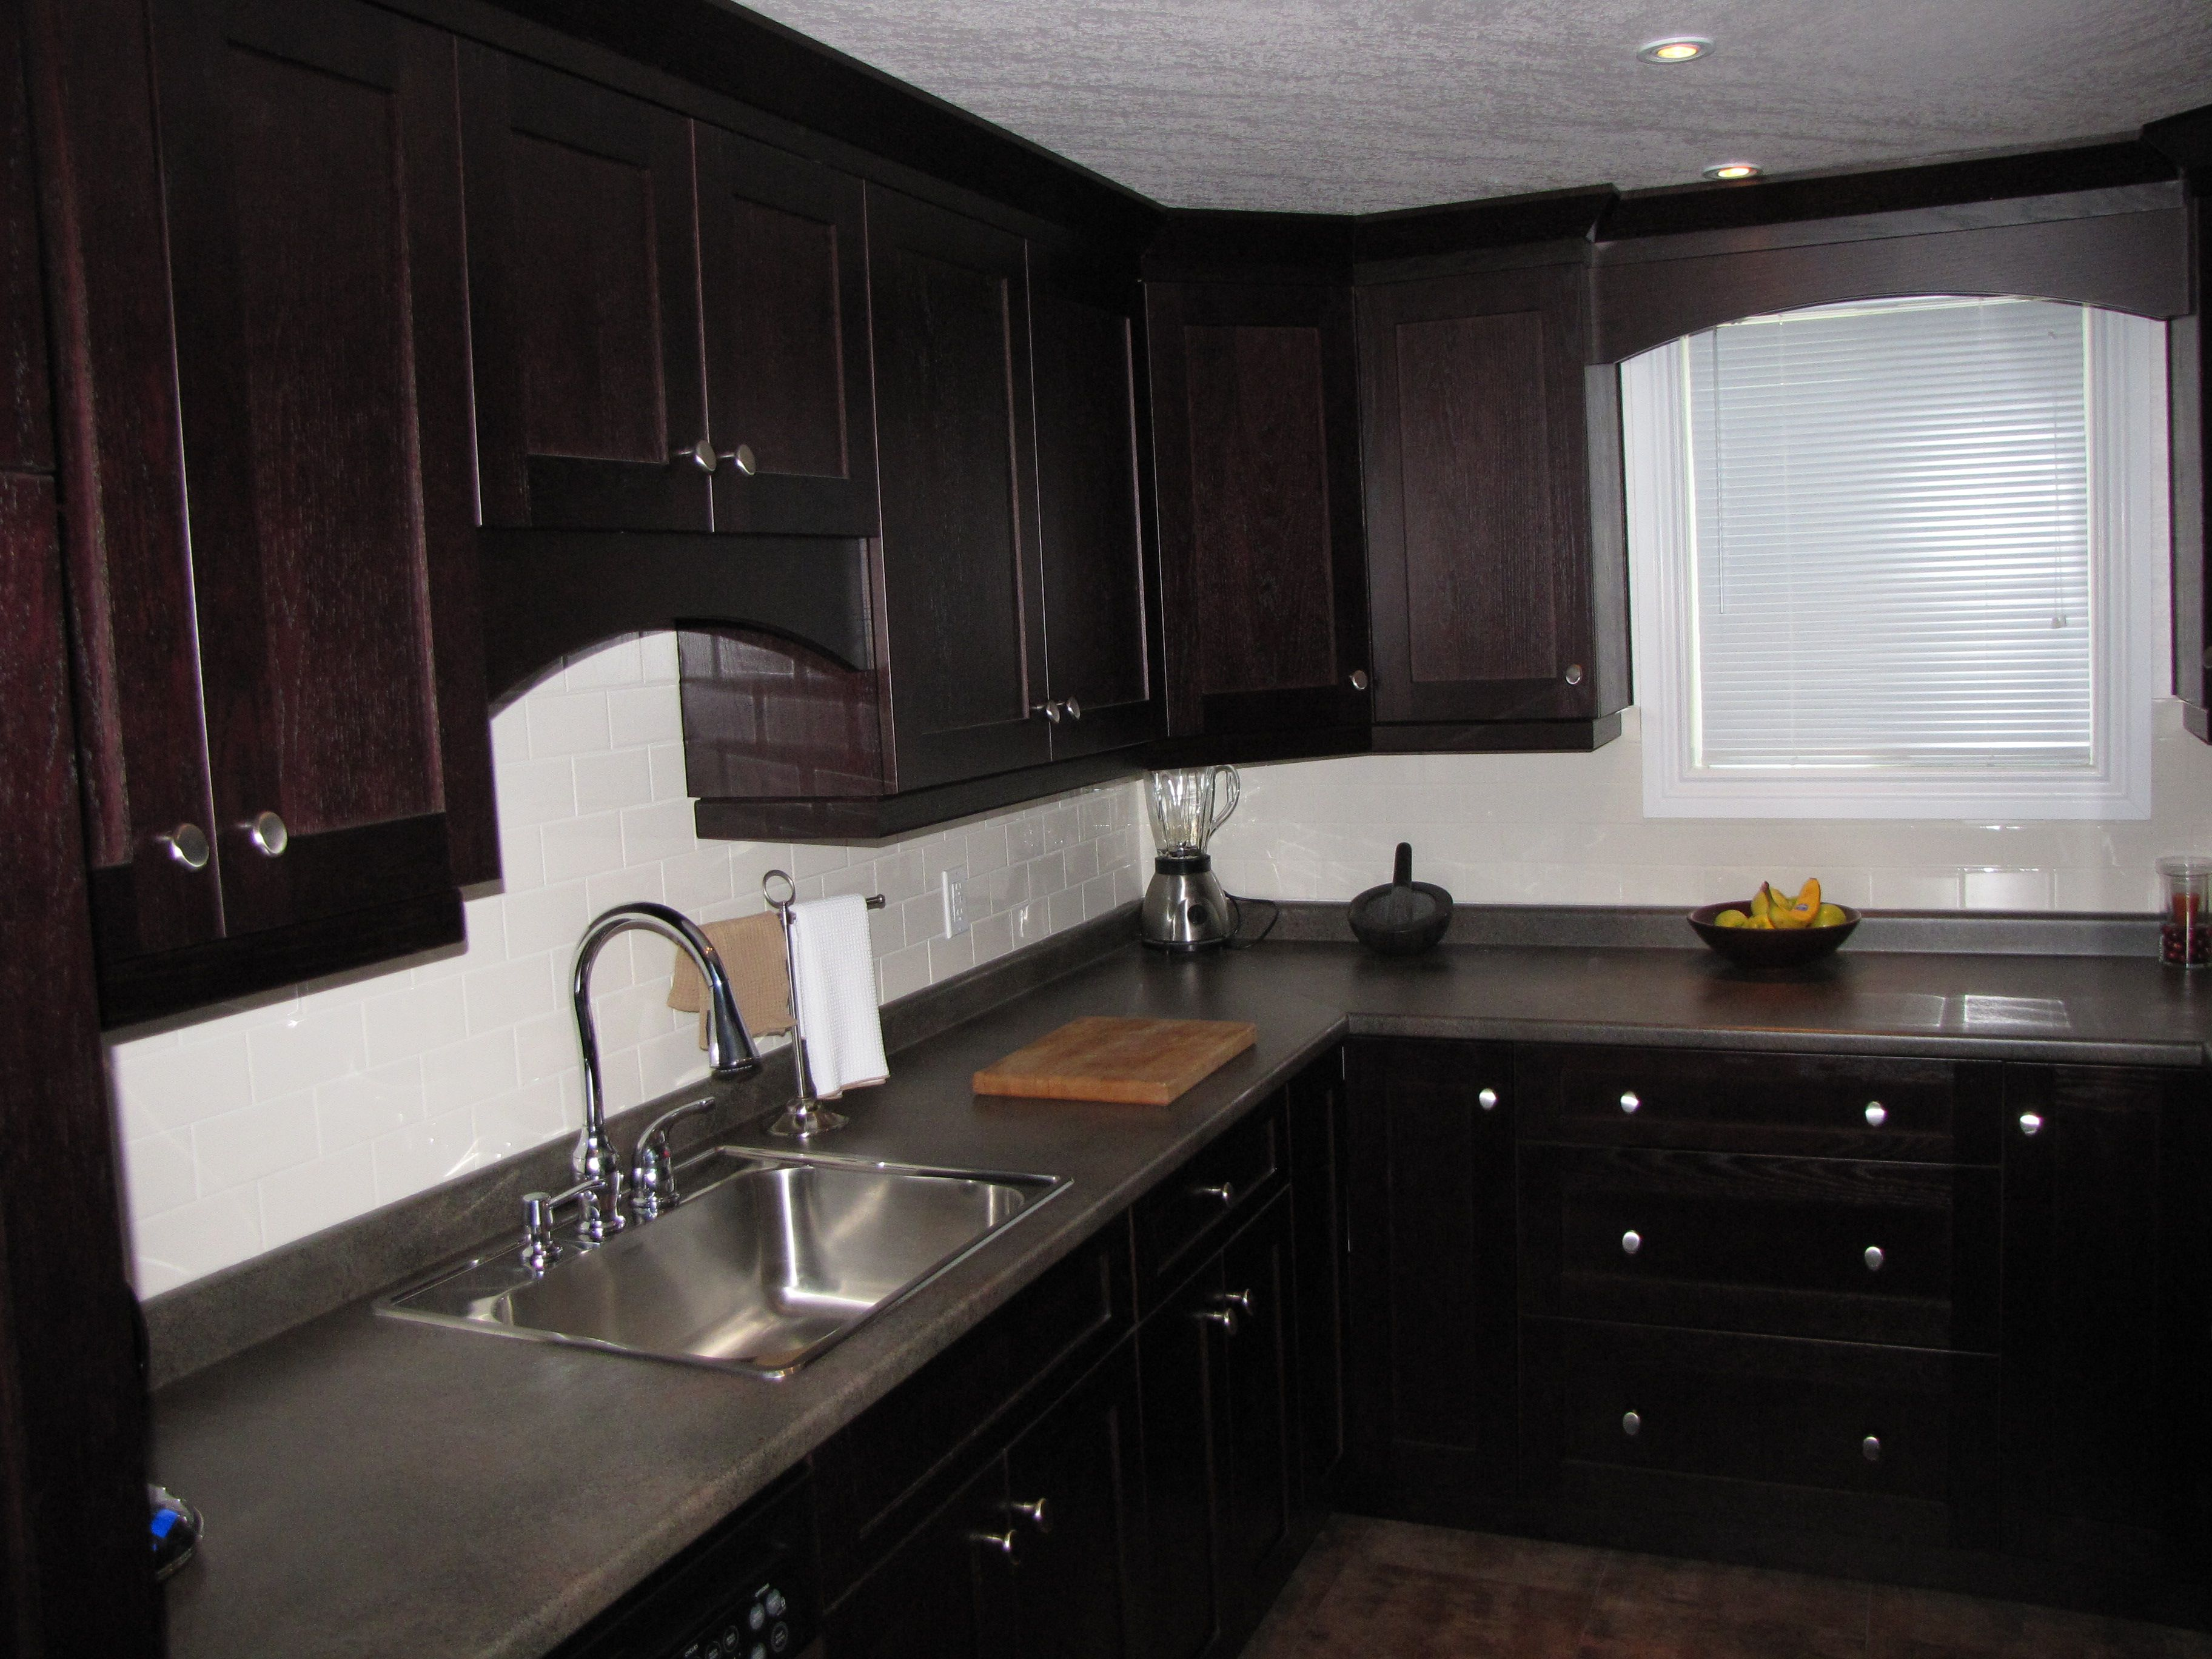 133 best Laminate countertops or counters images on Pinterest ...